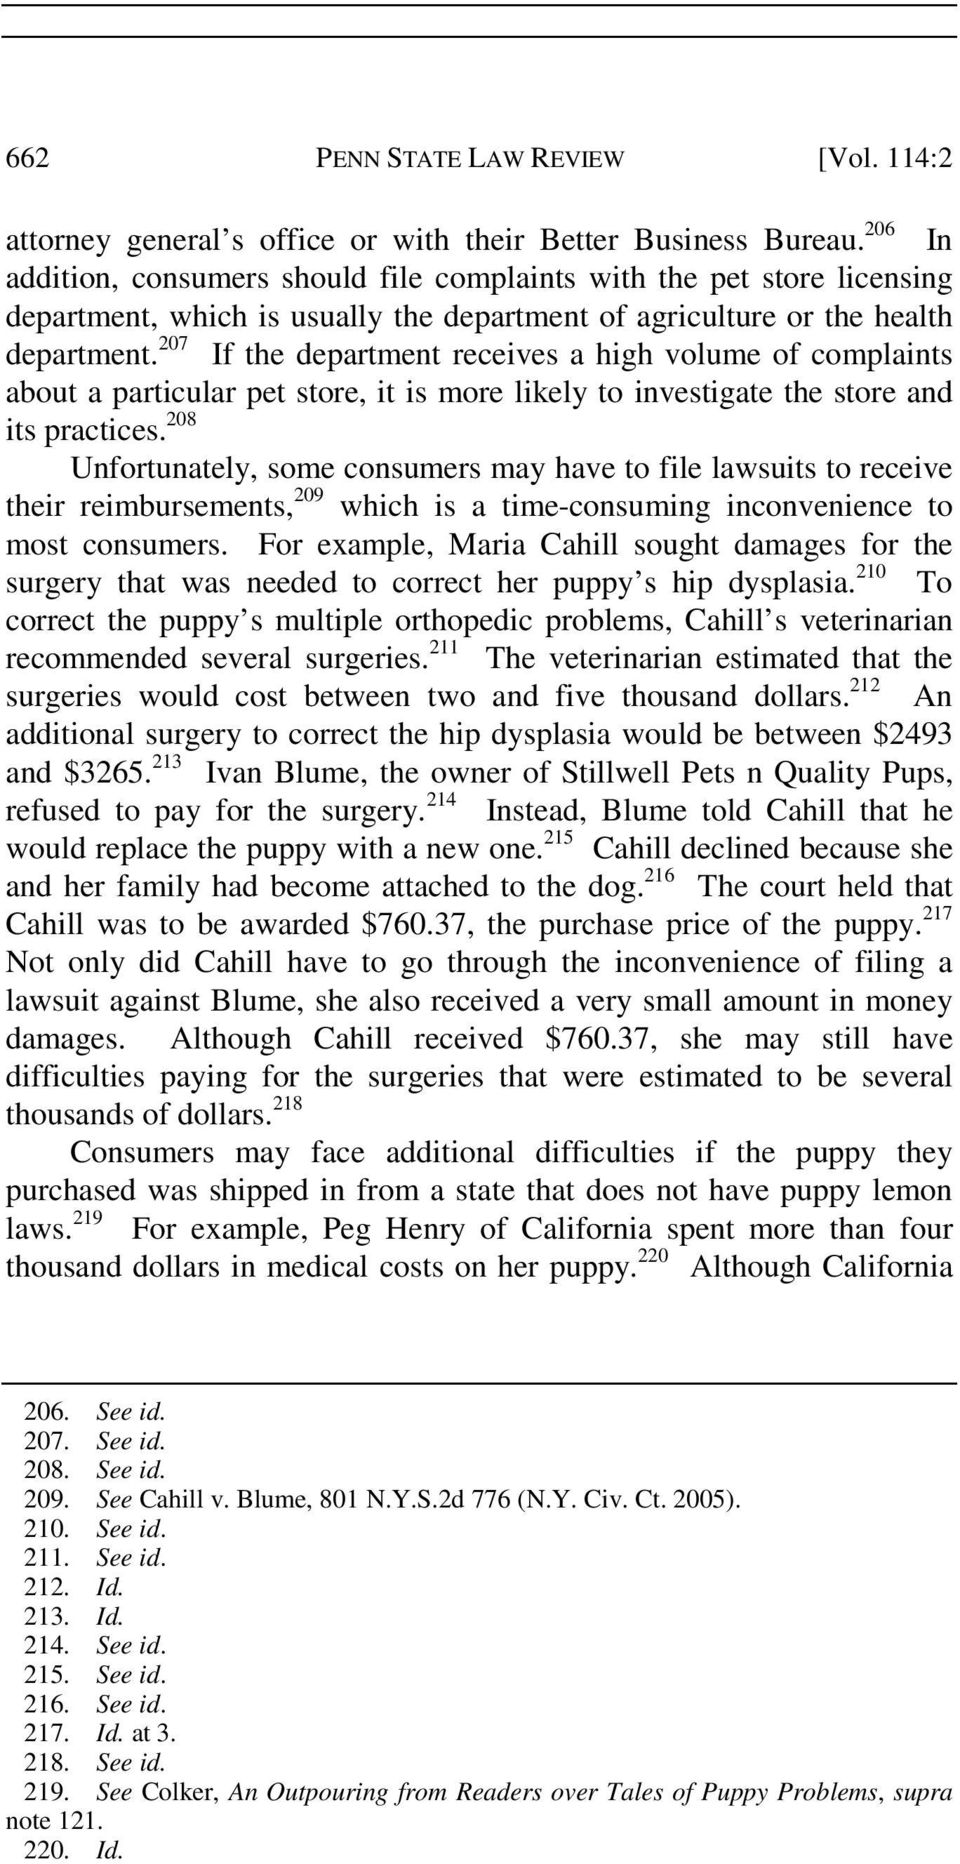 207 If the department receives a high volume of complaints about a particular pet store, it is more likely to investigate the store and its practices.